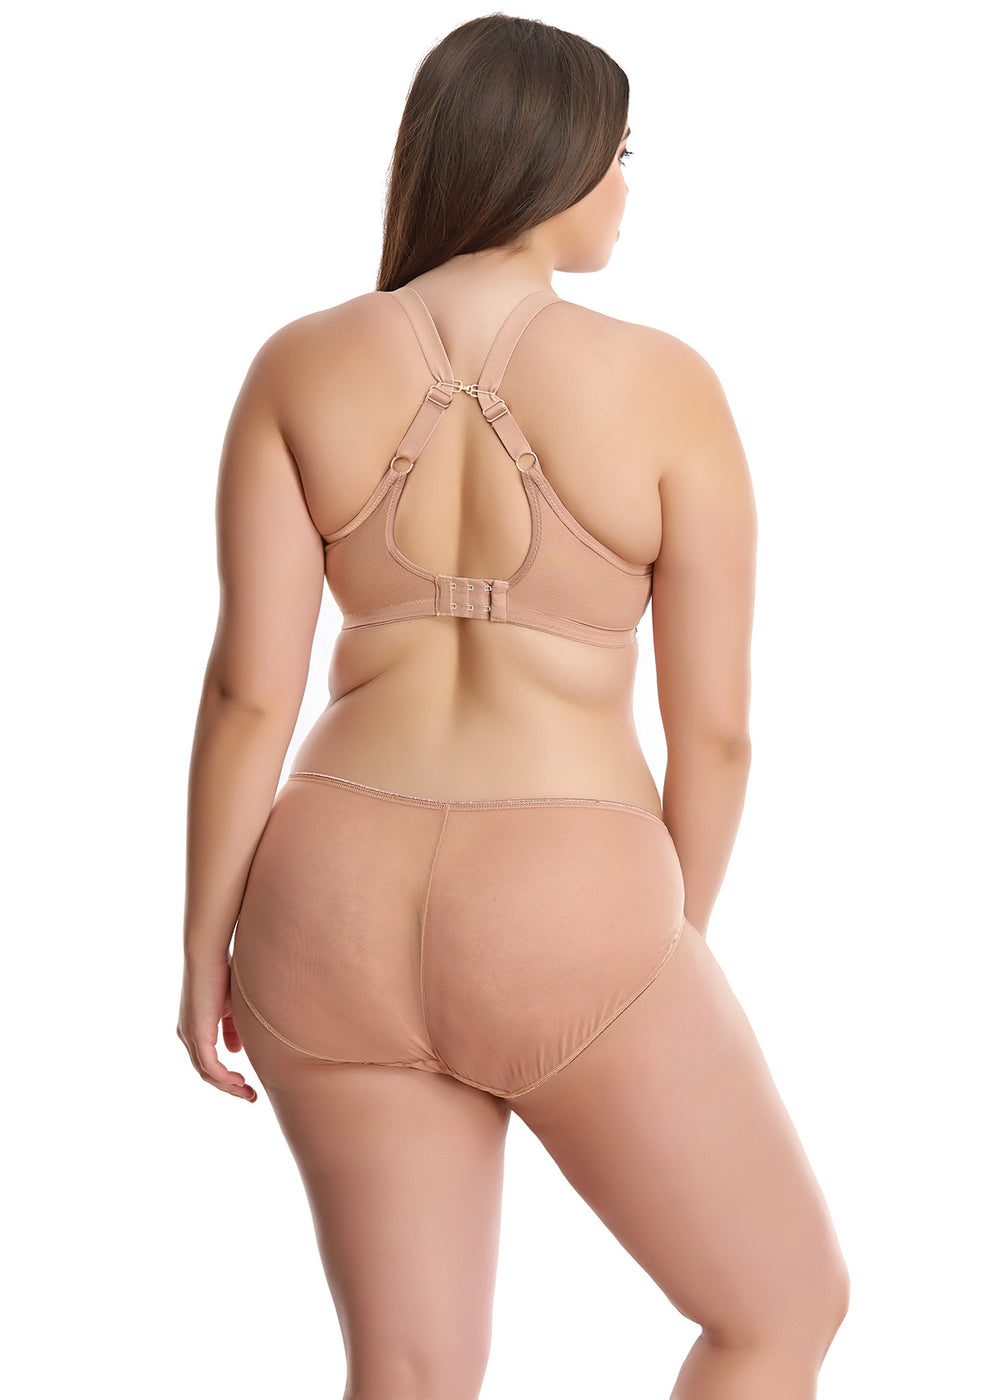 Matilda Plunge - Nude - Sheer Essentials Lingerie & Swim